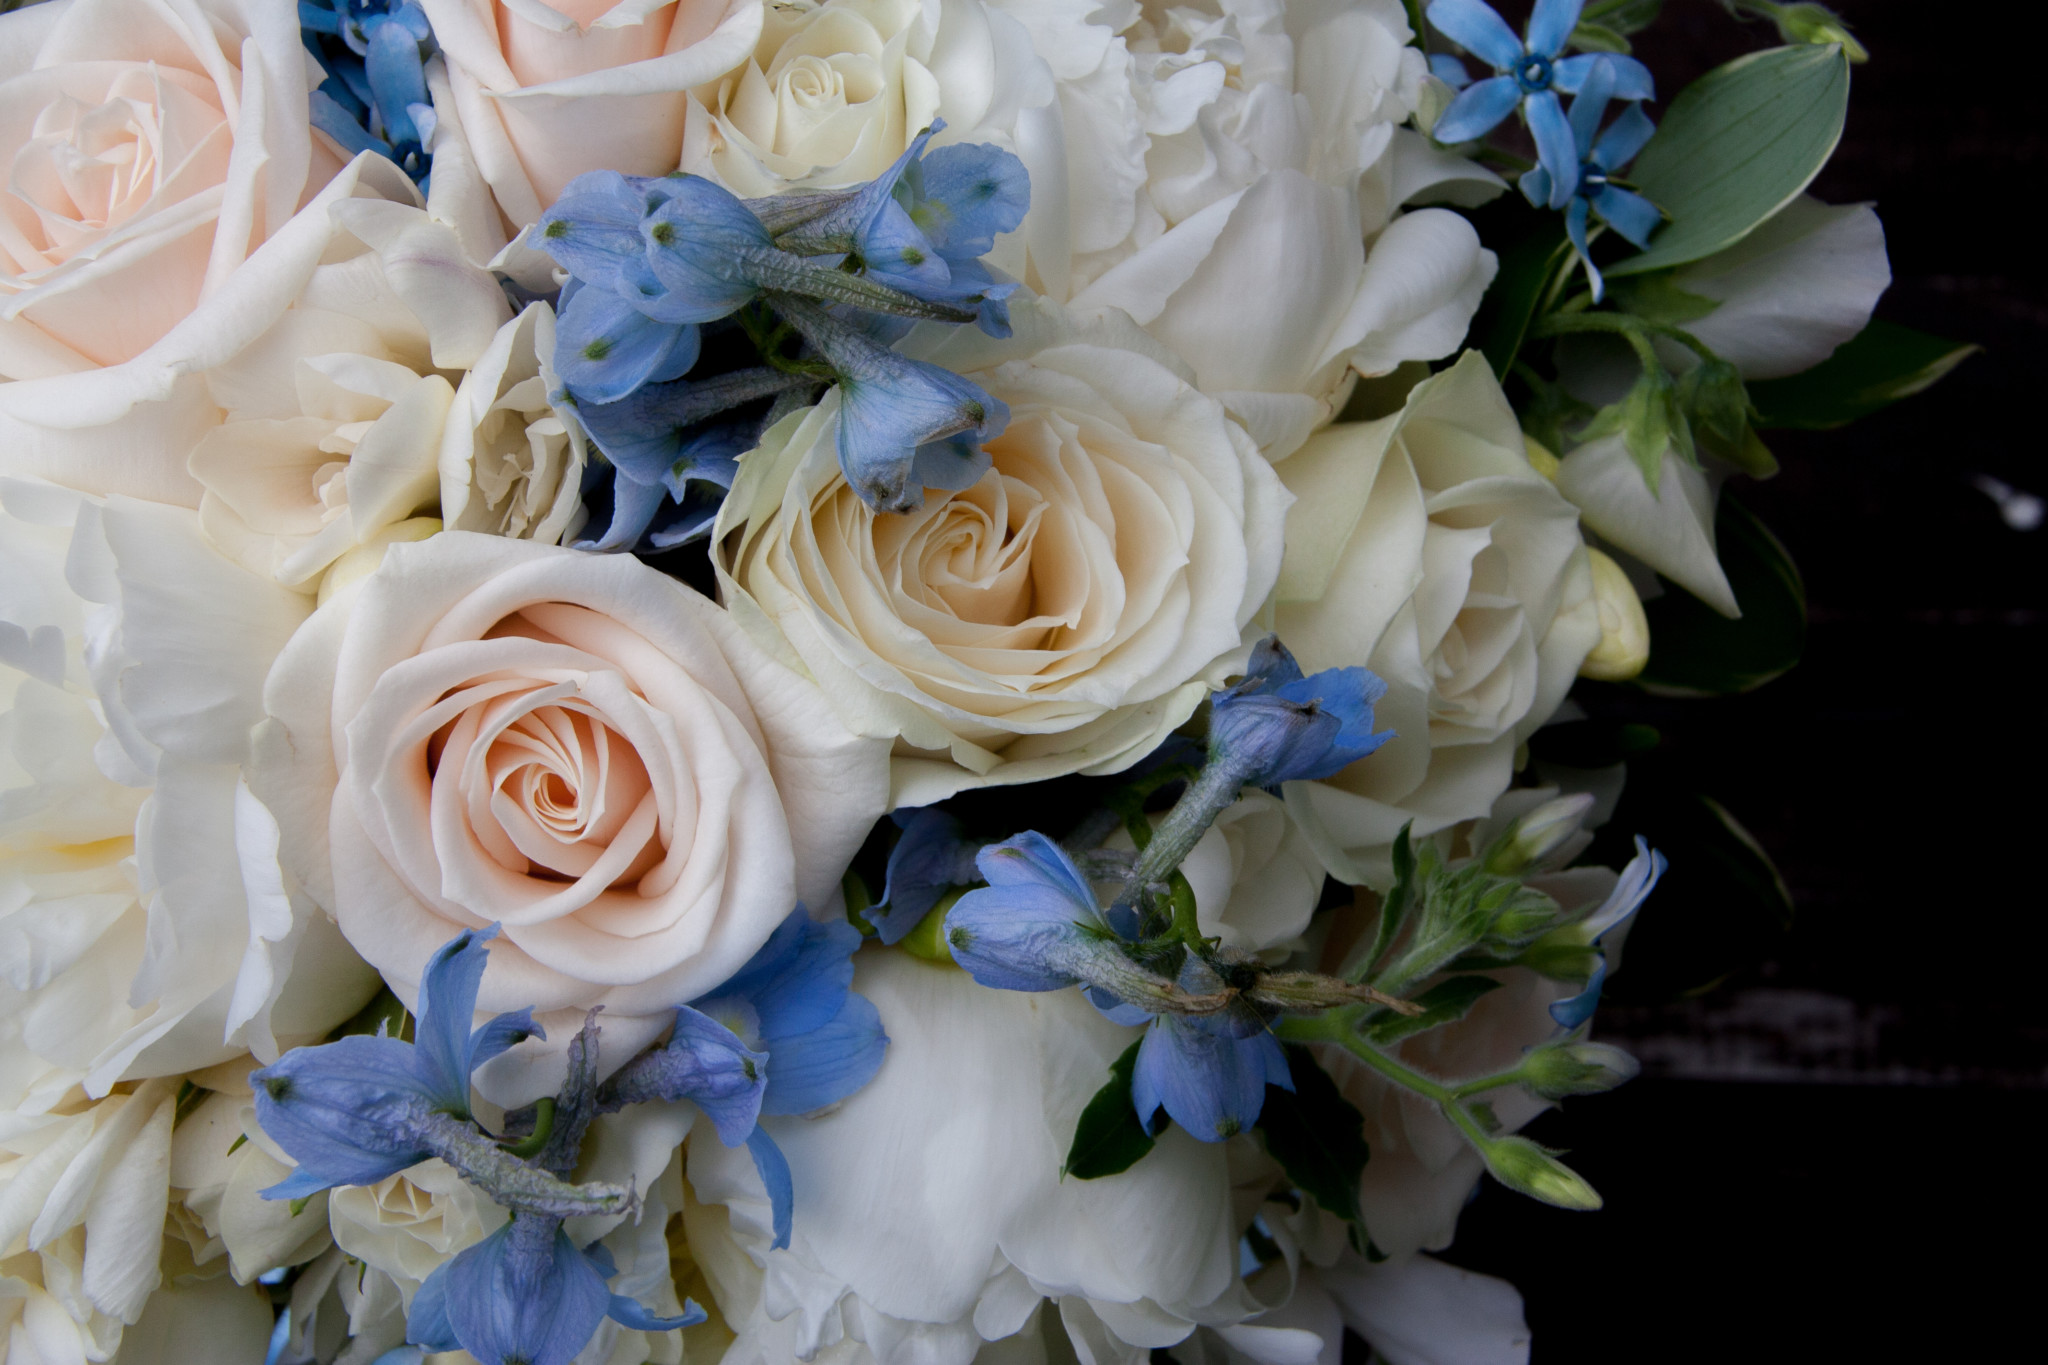 Showing close up of bride's wedding bouquet